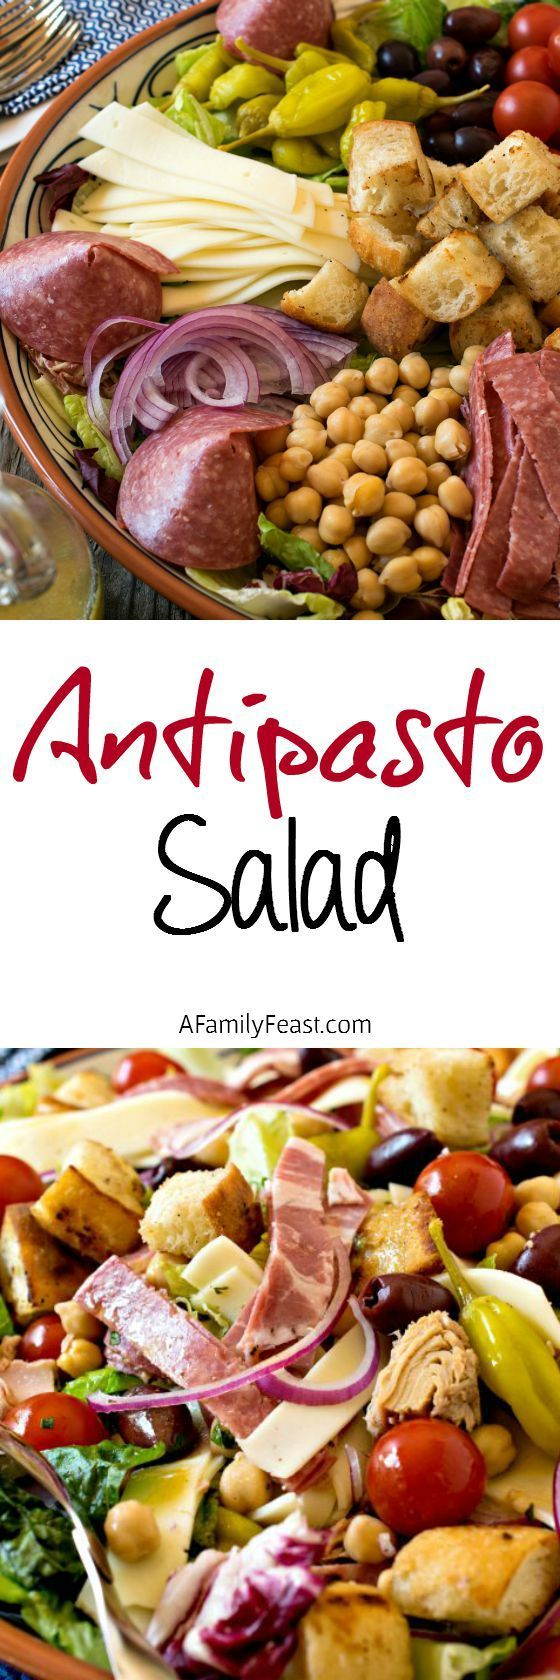 Antipasto Salad - This classic Italian salad is simple and delicious! @peapoddelivers #sponsored